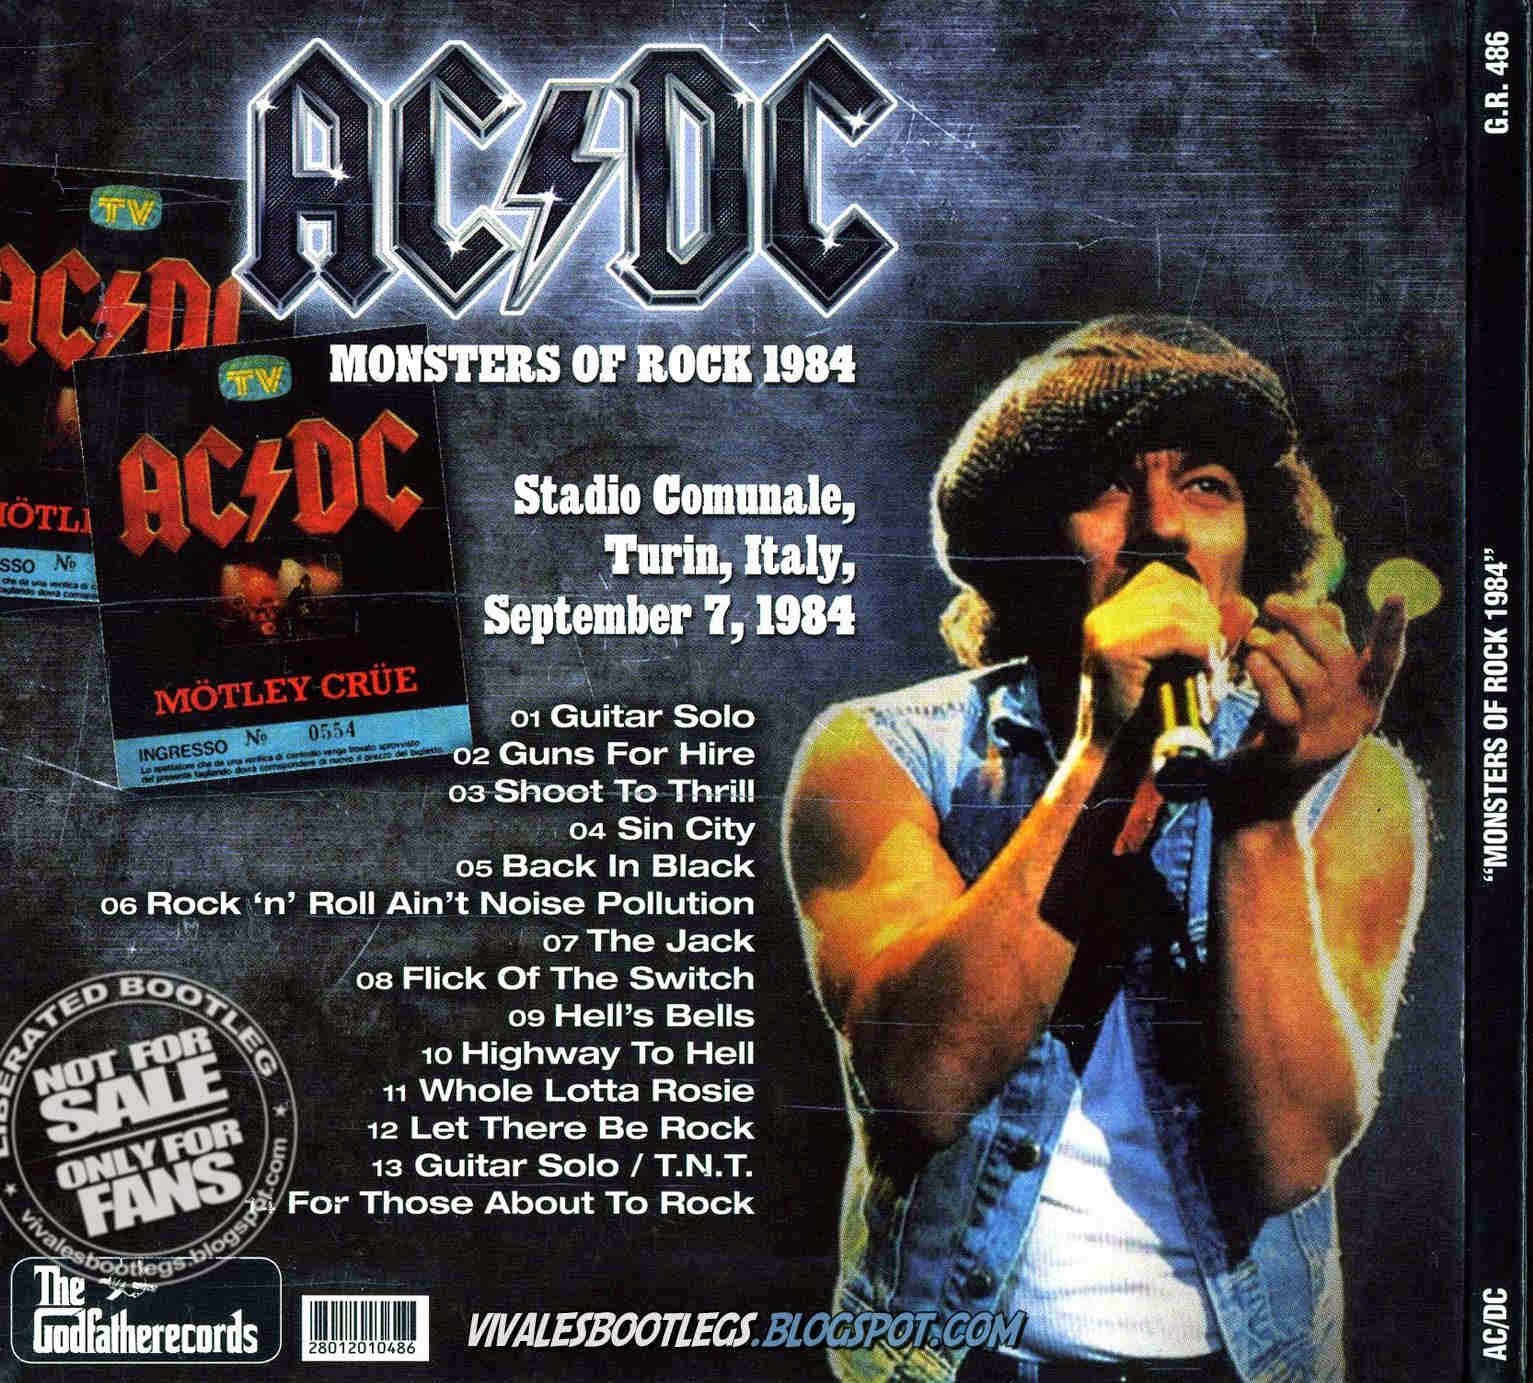 ACDC Monsters of Rock 1984 back cover